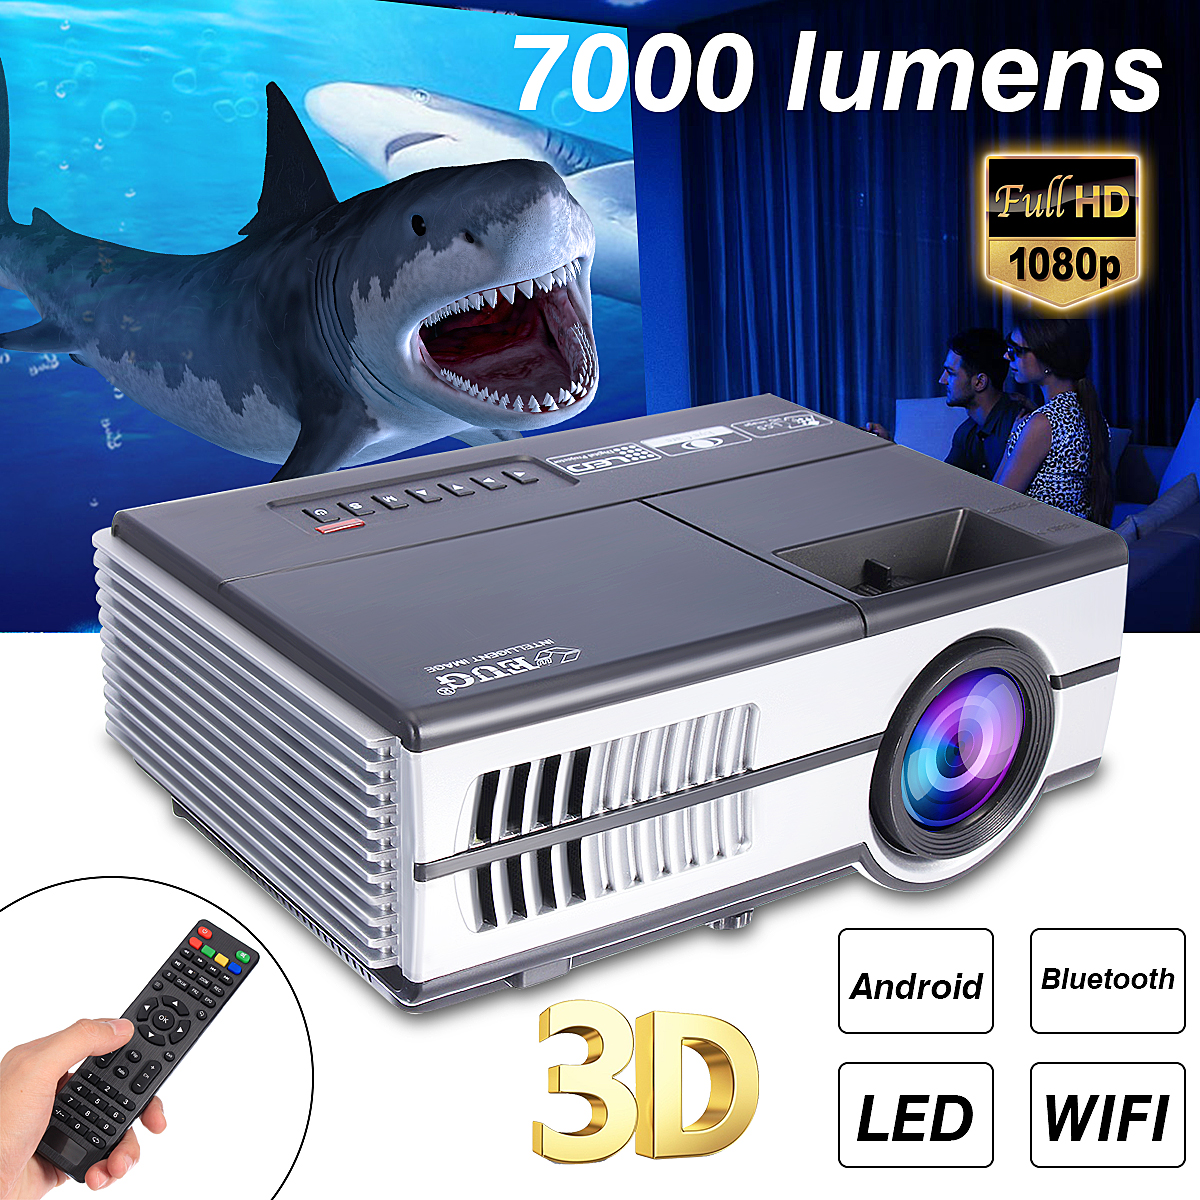 7000 Lumens Max 600DA/B LED Projector 1080P HD Video Stereo Speaker 3D Multimedia Bluetooth WiFi TV Box Video Game Home Cinema